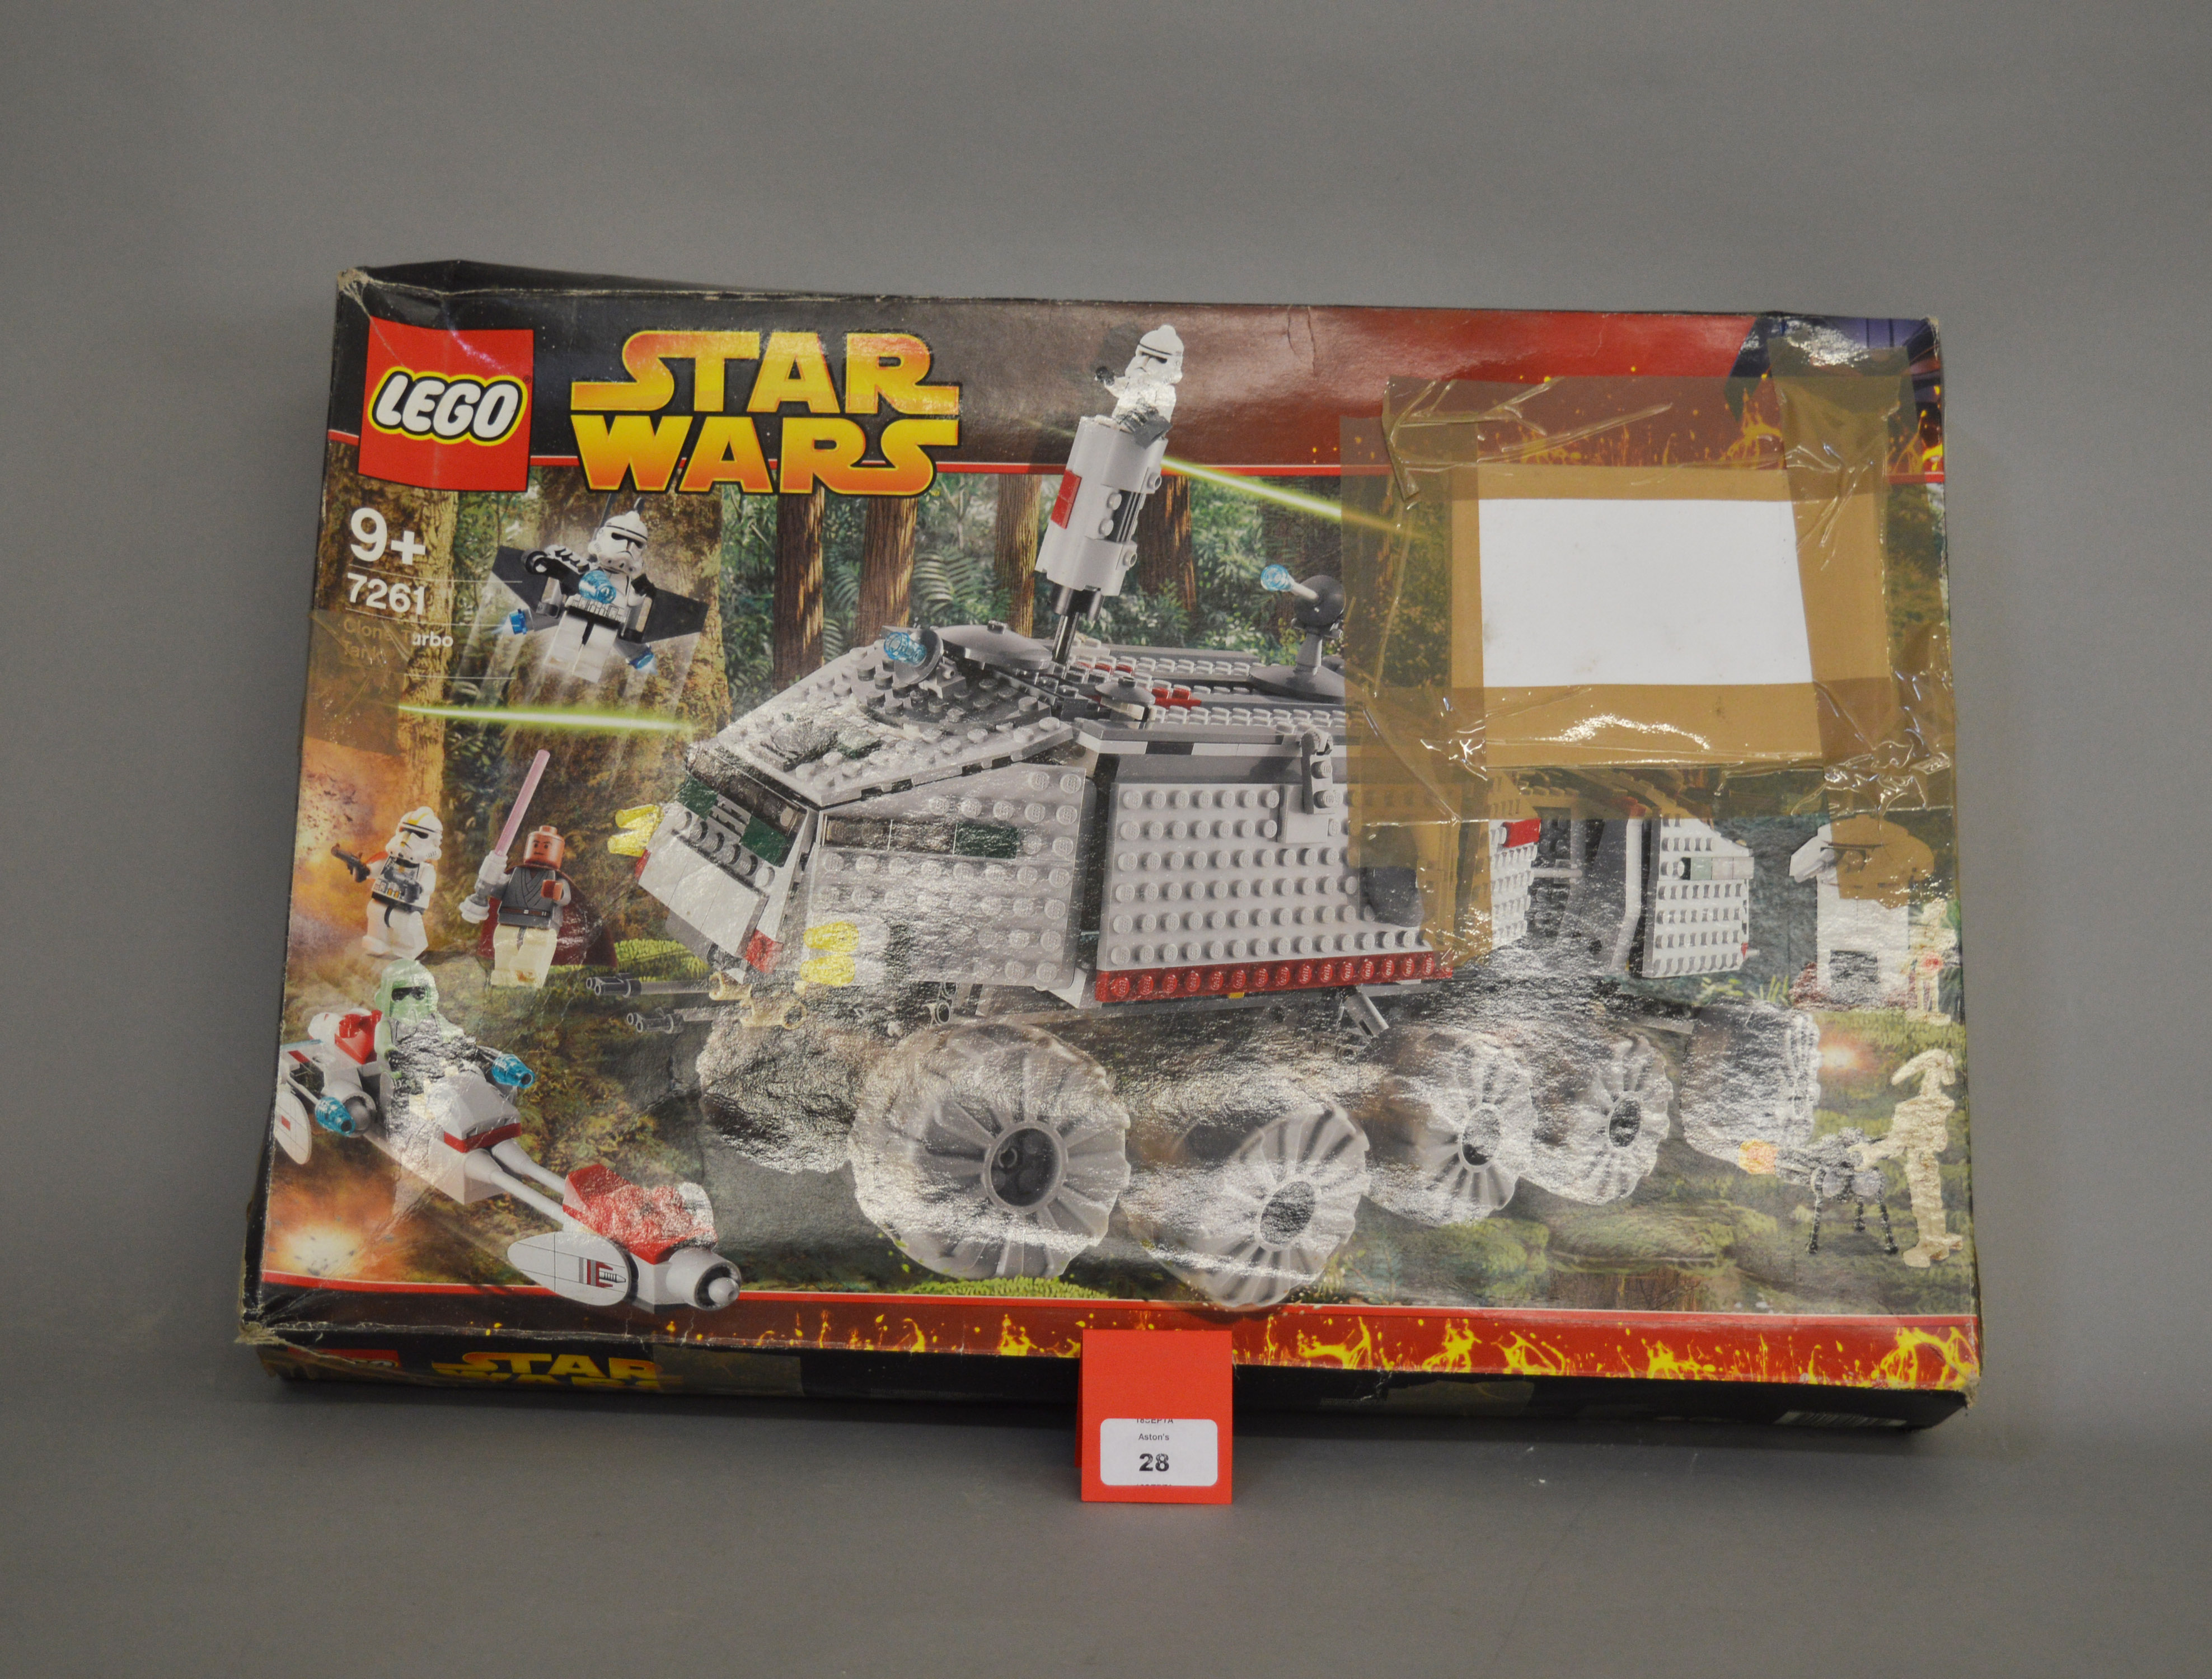 Lot 28 - Lego Star Wars 7261 Clone Turbo Tank. Opened in P-F box, not checked if complete.